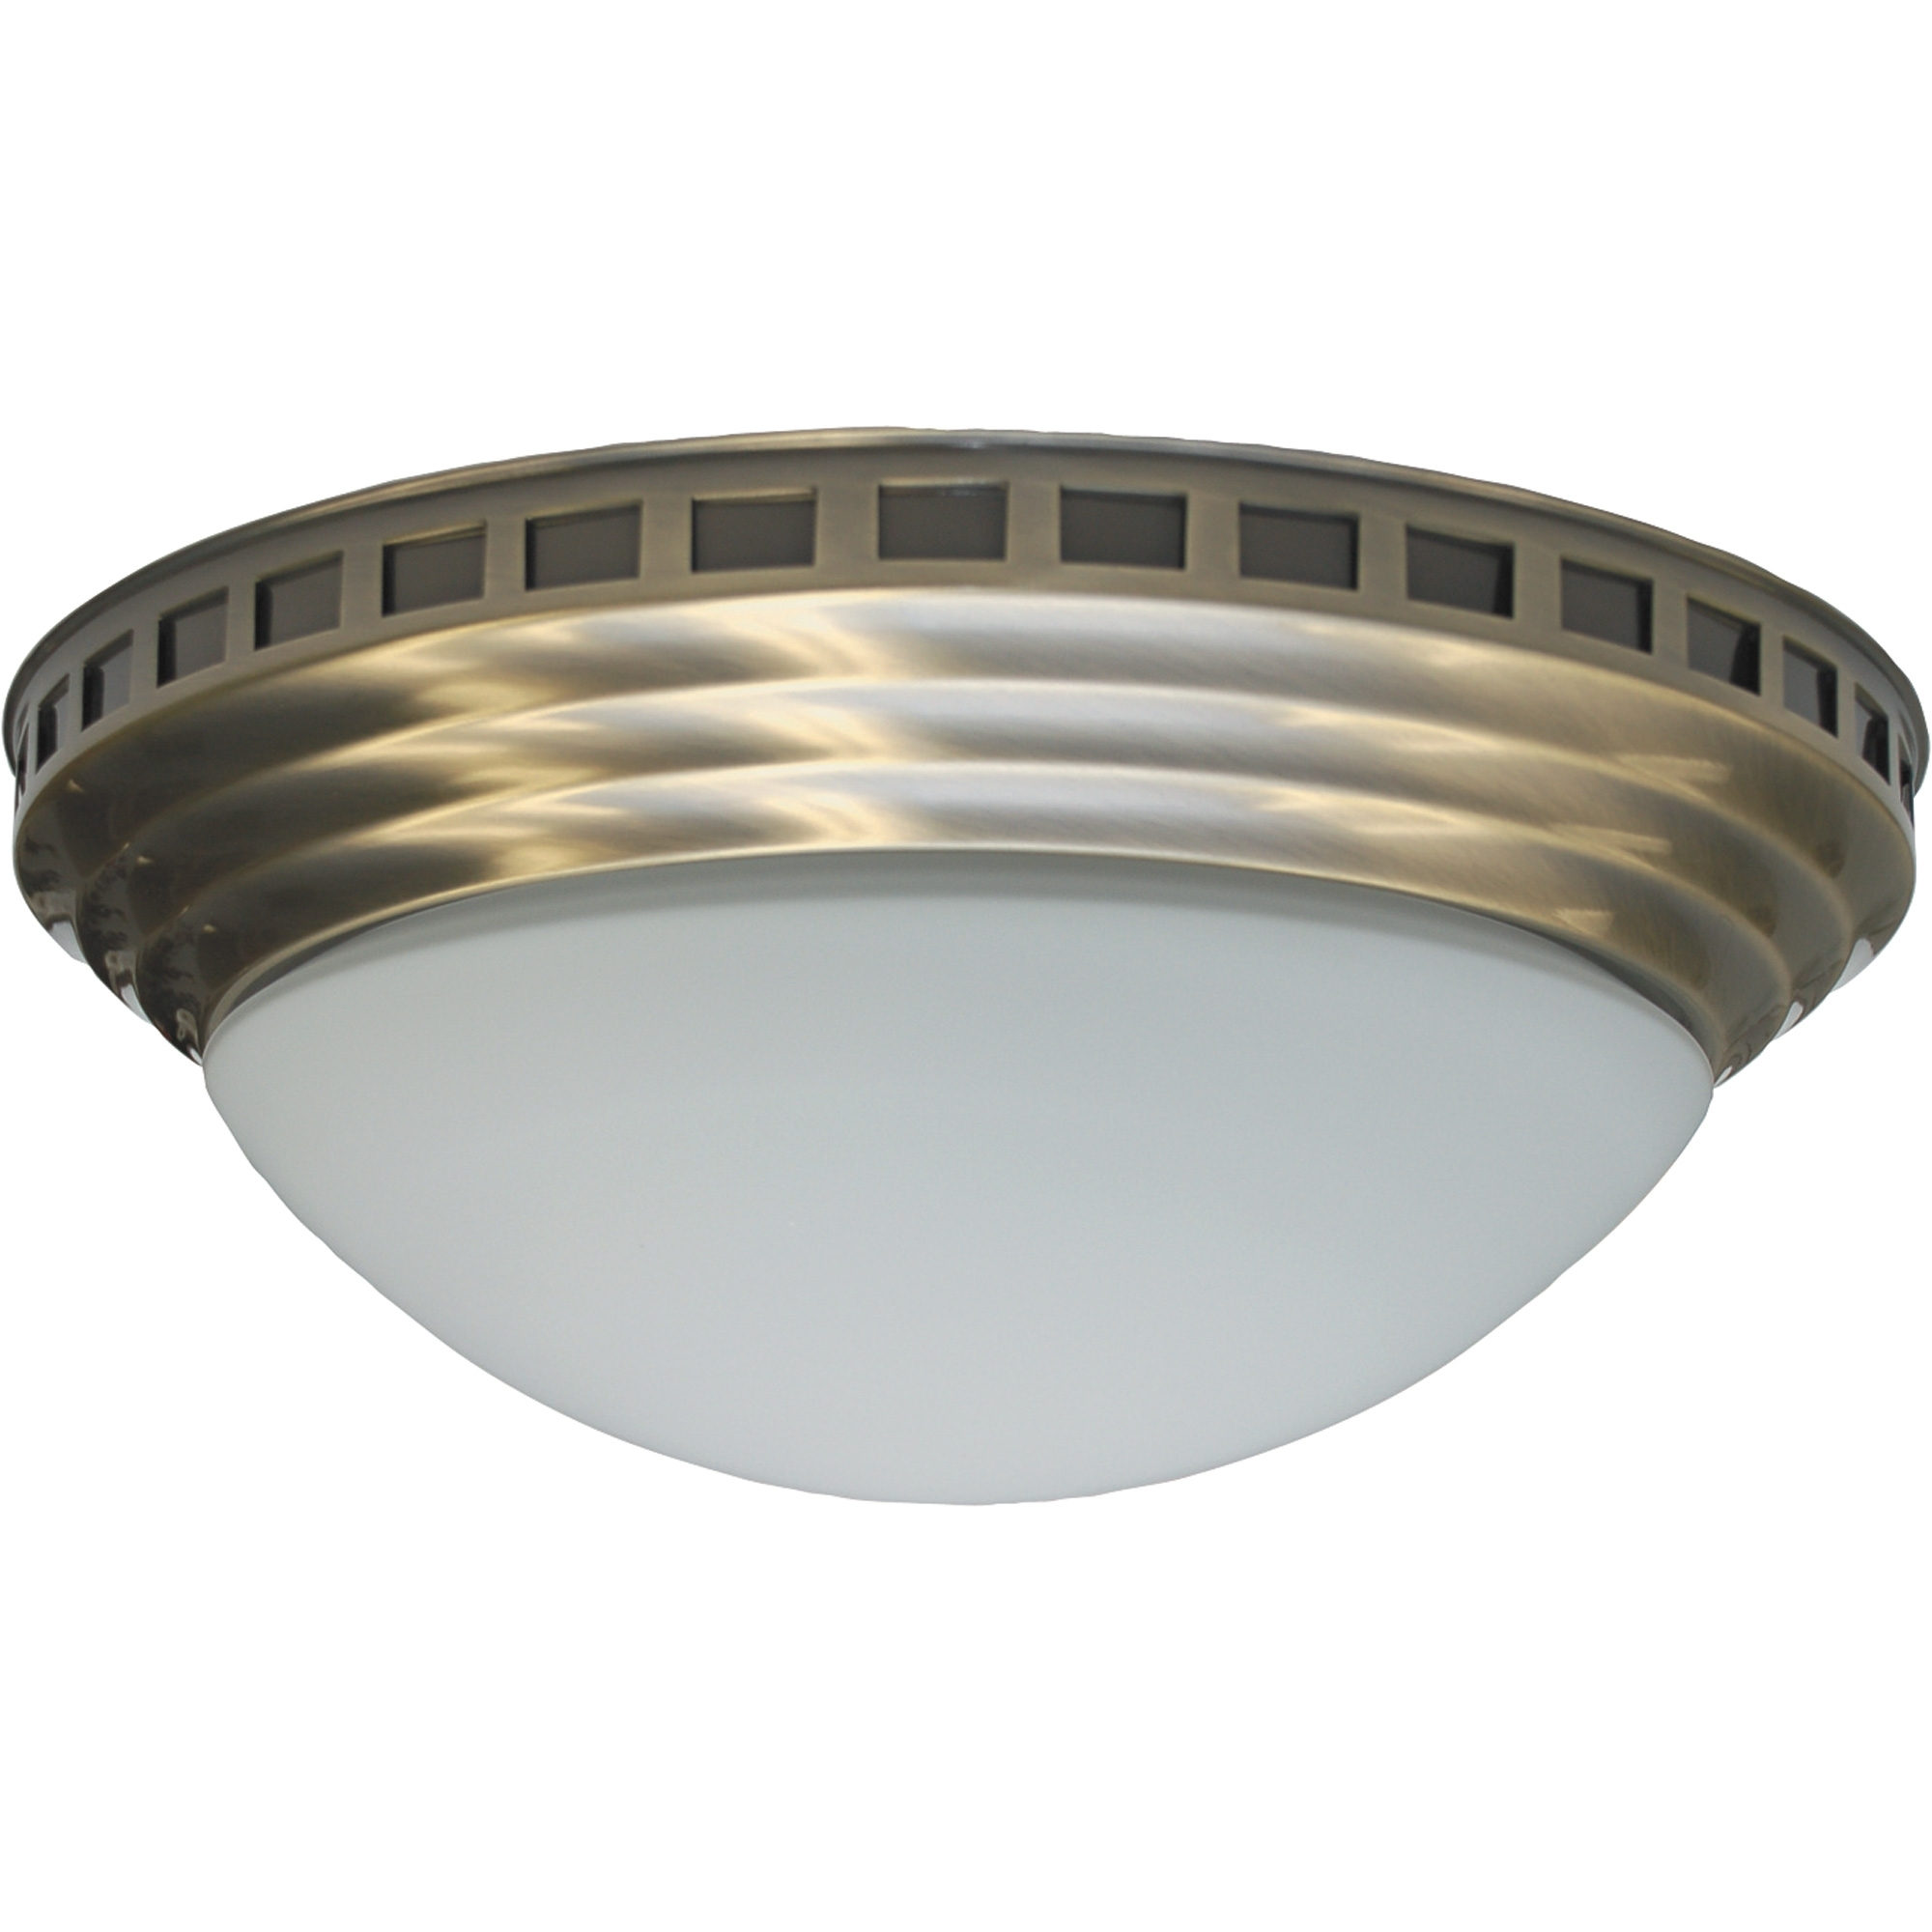 Best Bathroom Fan With Light 15 Photo Of Outdoor Ceiling Lights At Bunnings